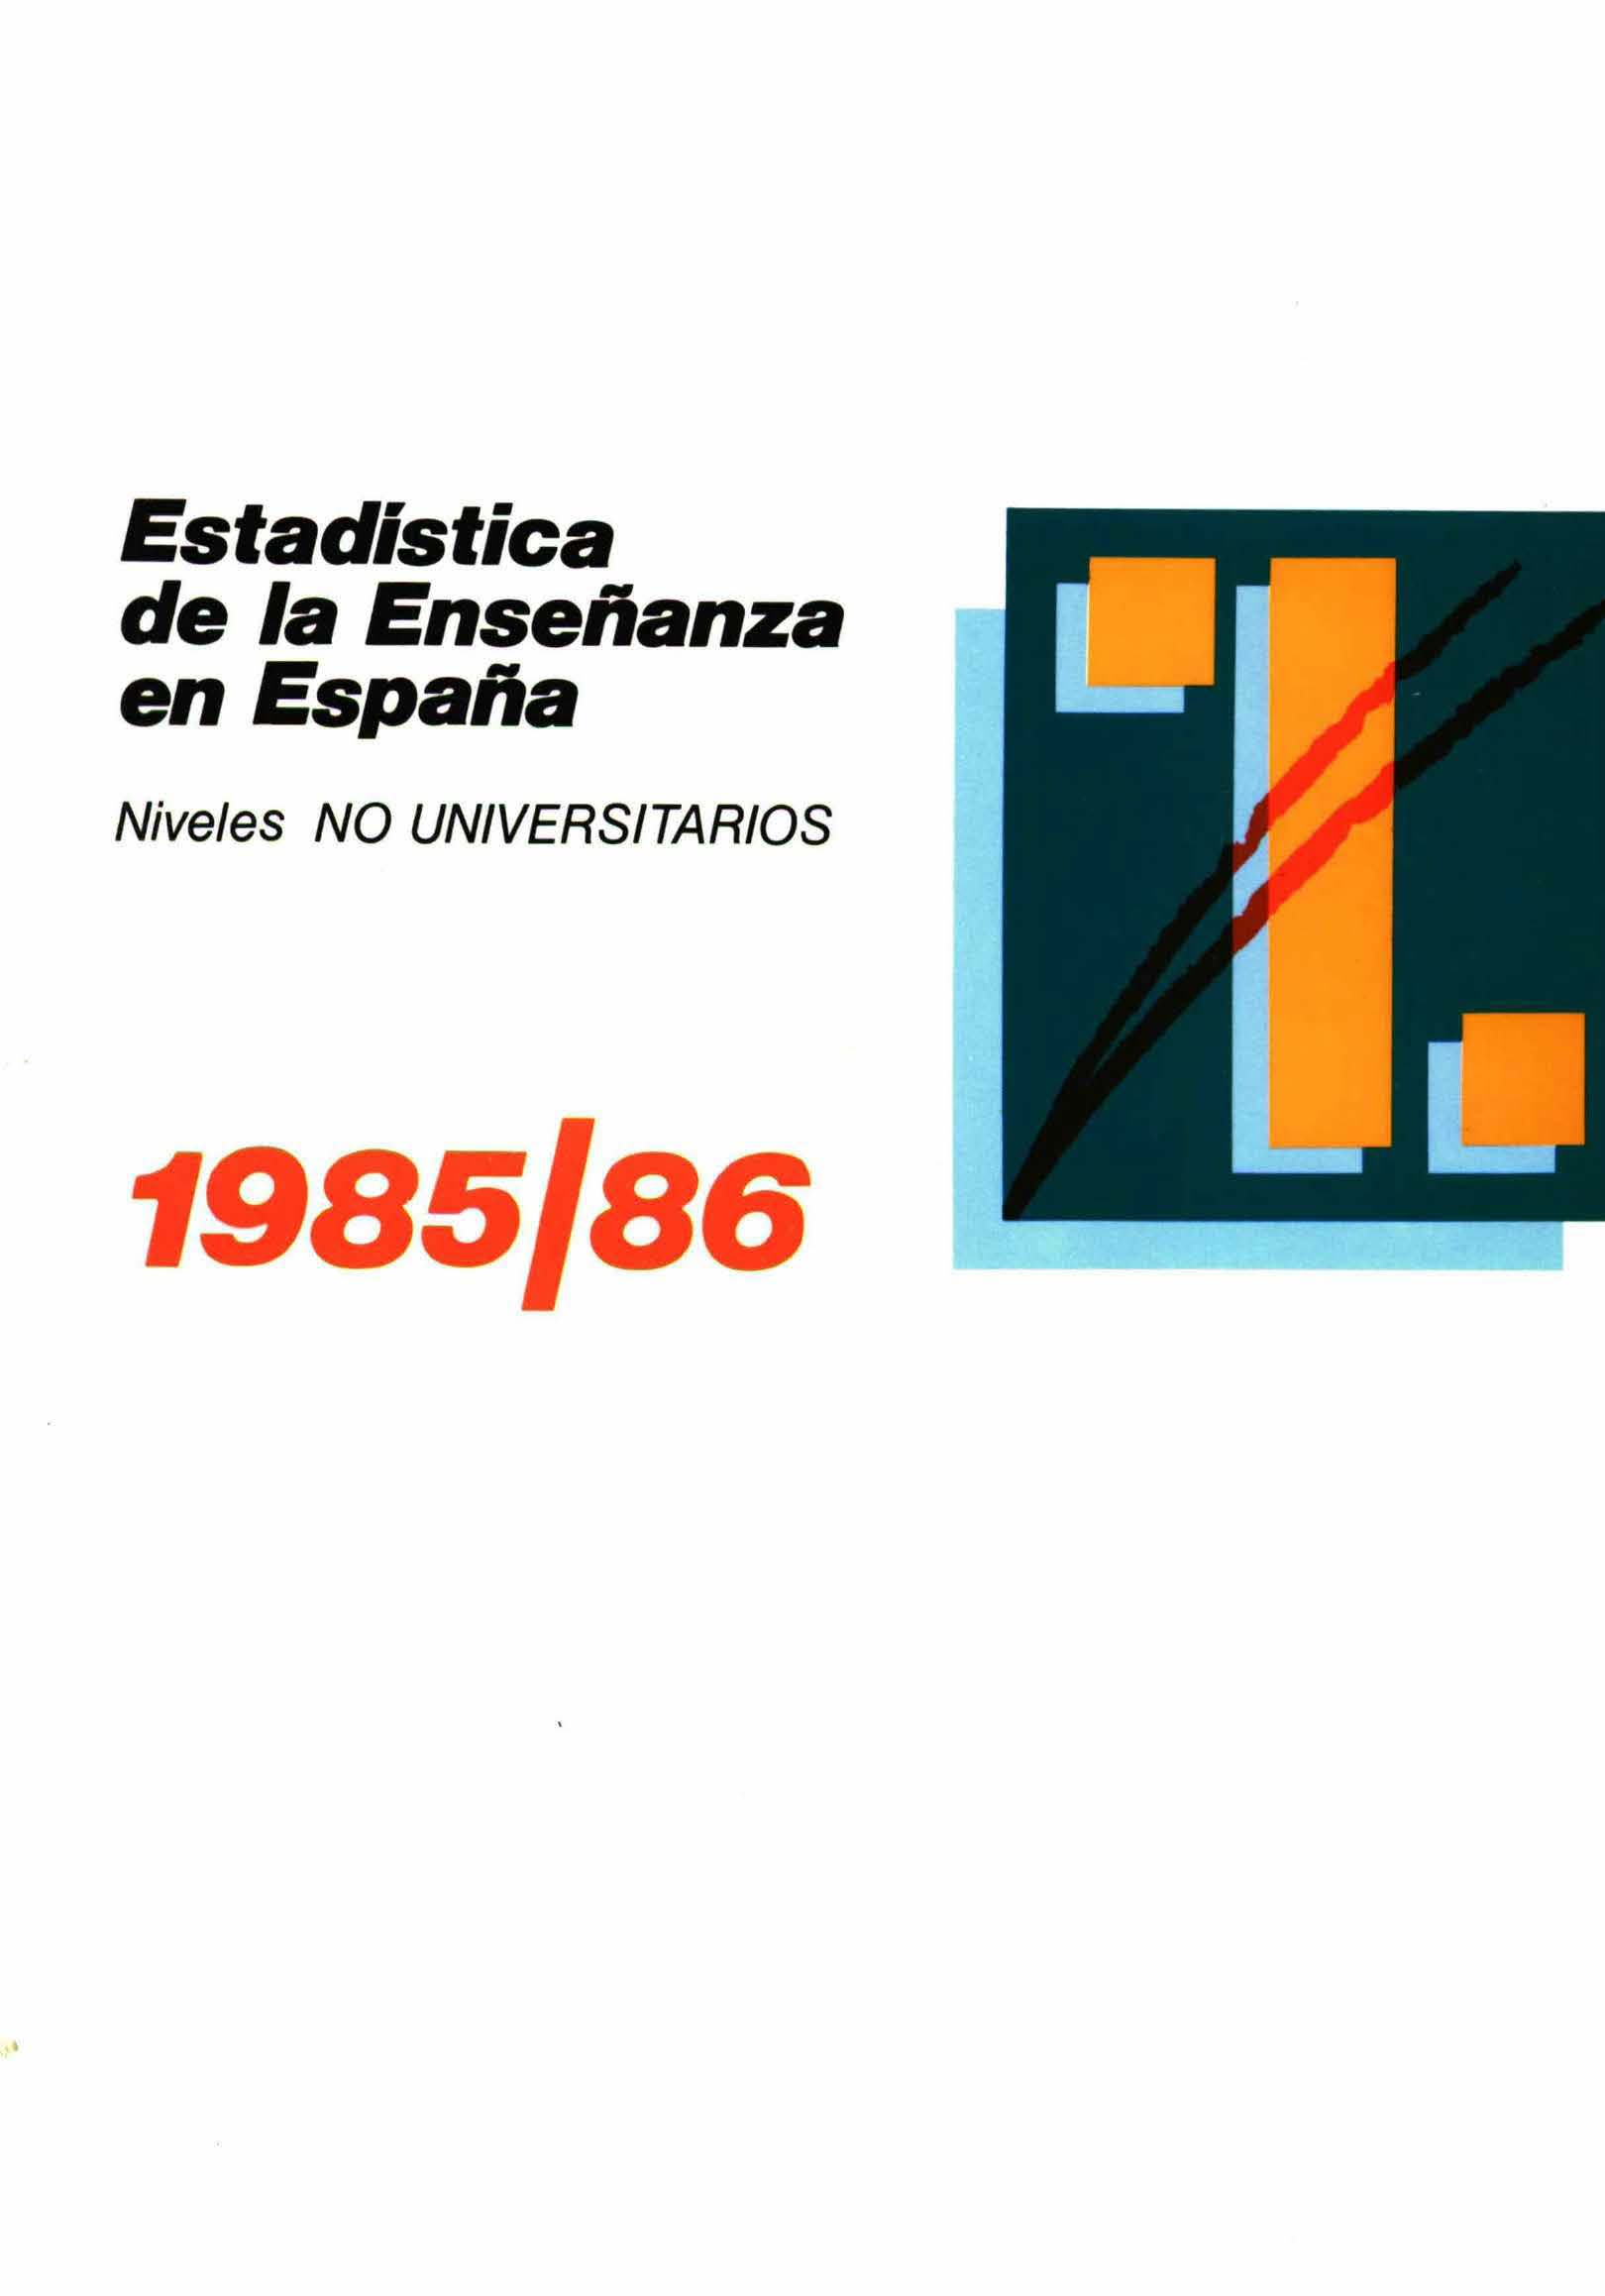 estadistica-de-la-ensenanza-en-espana-niveles-no-universitarios-198586